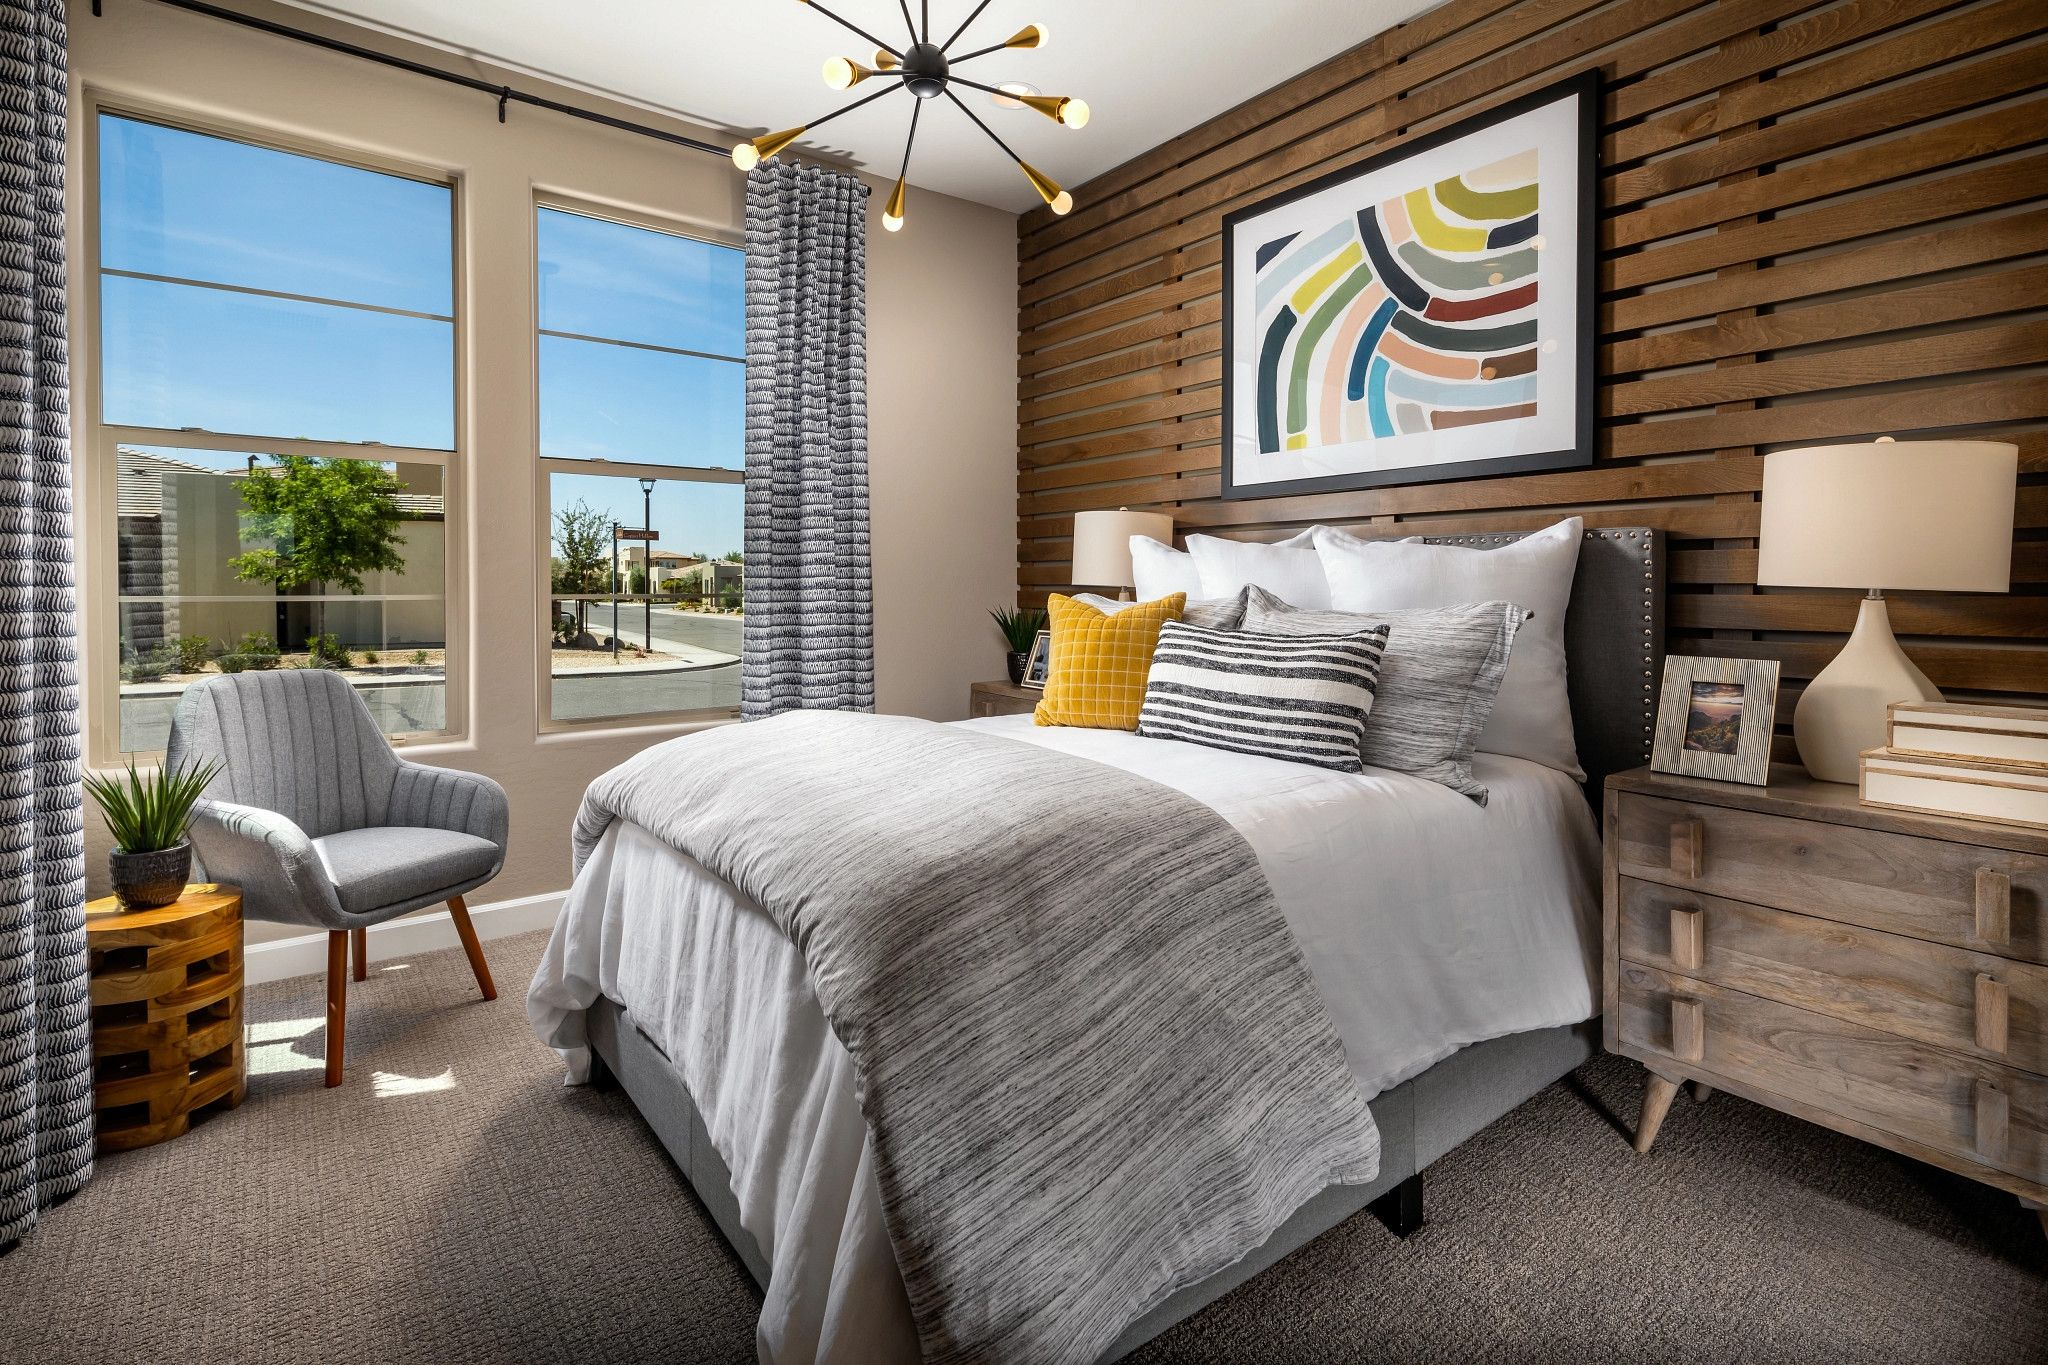 Bedroom featured in the Evia By Shea Homes - Trilogy in Phoenix-Mesa, AZ